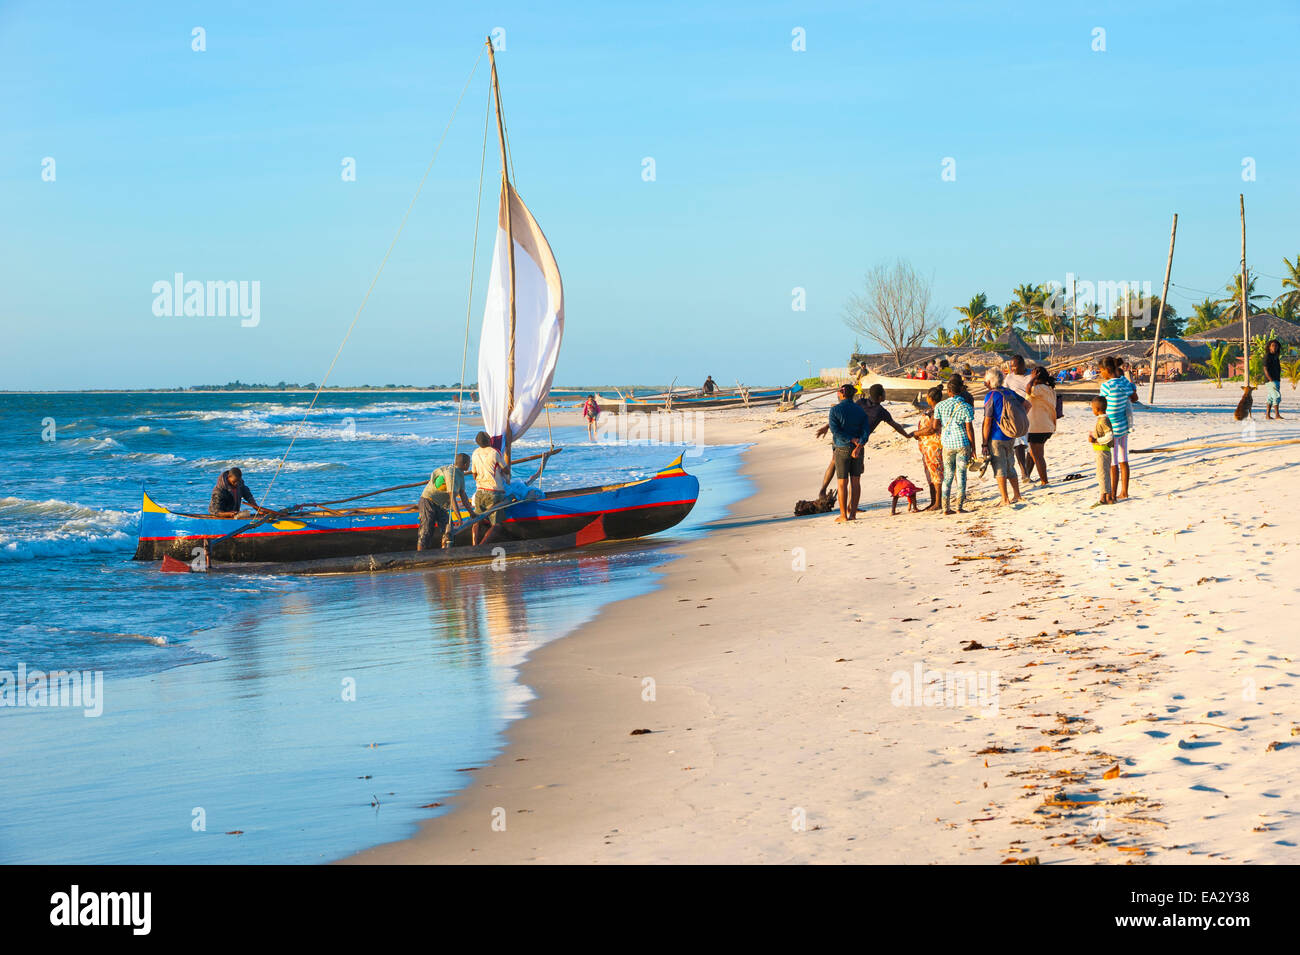 Malagasy fishermen coming back from a fishing trip, Morondava, Toliara province, Madagascar, Africa - Stock Image